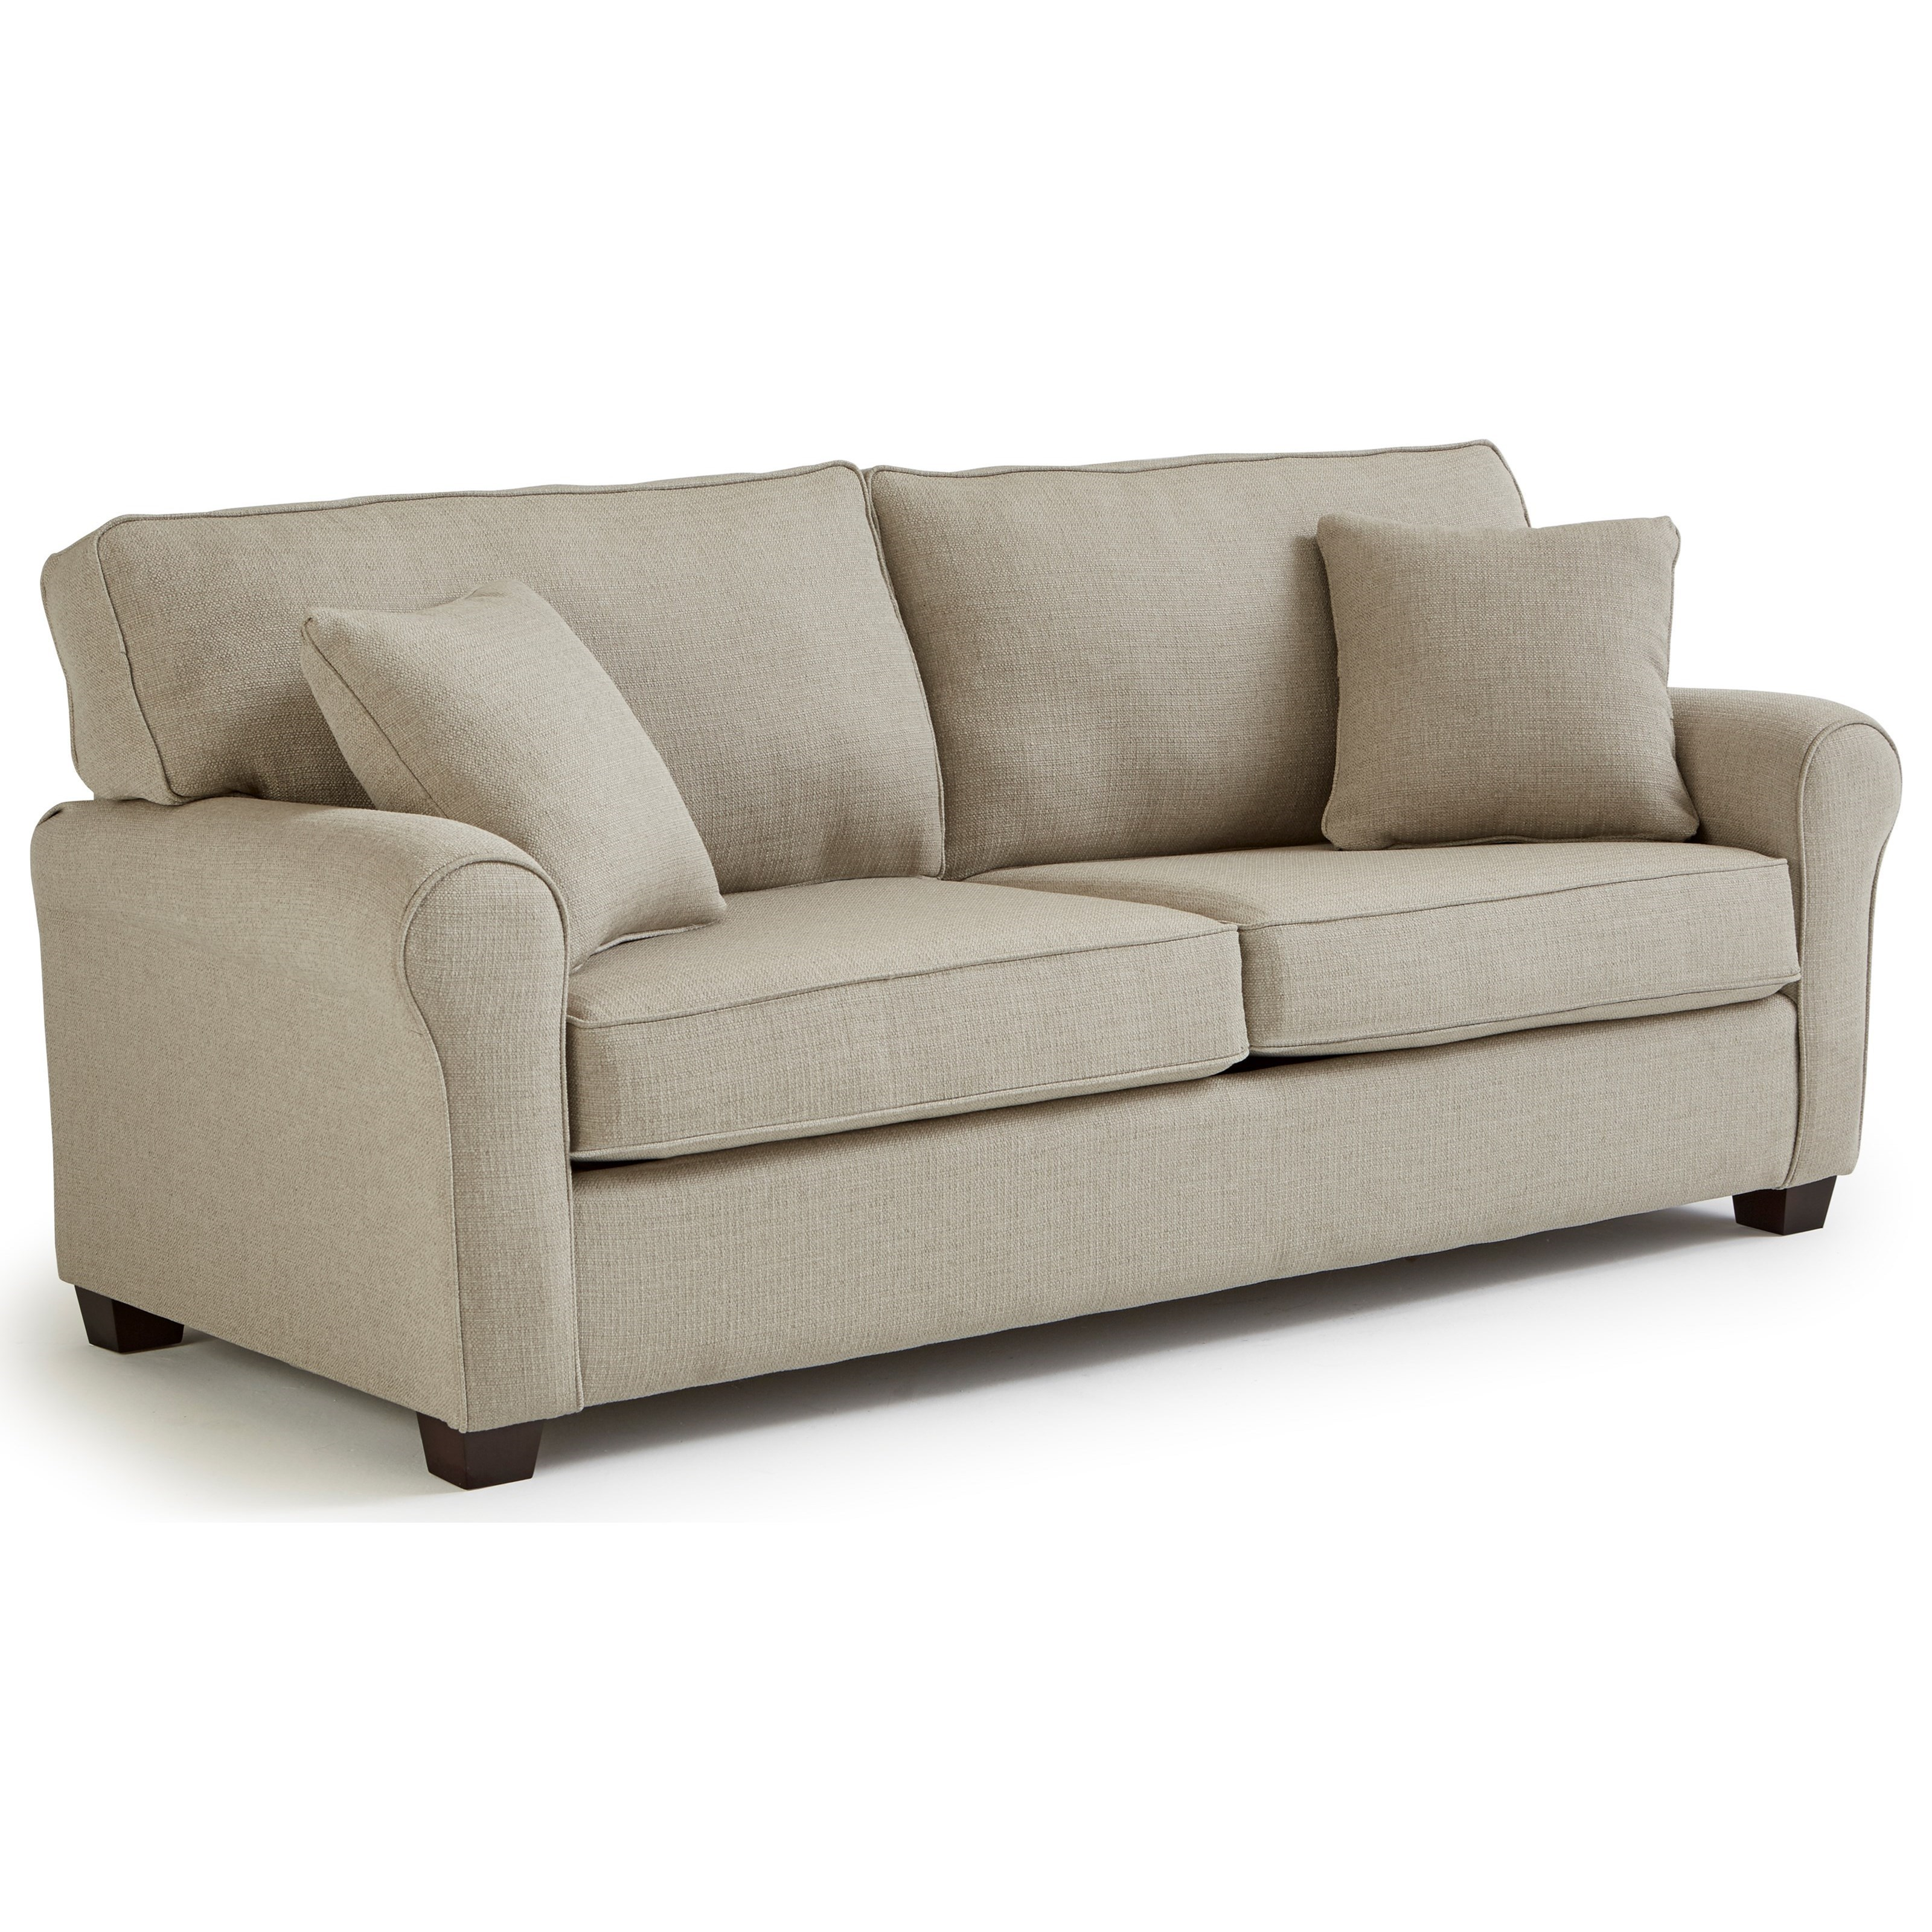 Best Home Furnishings Shannon Queen Sofa Sleepr Rifes